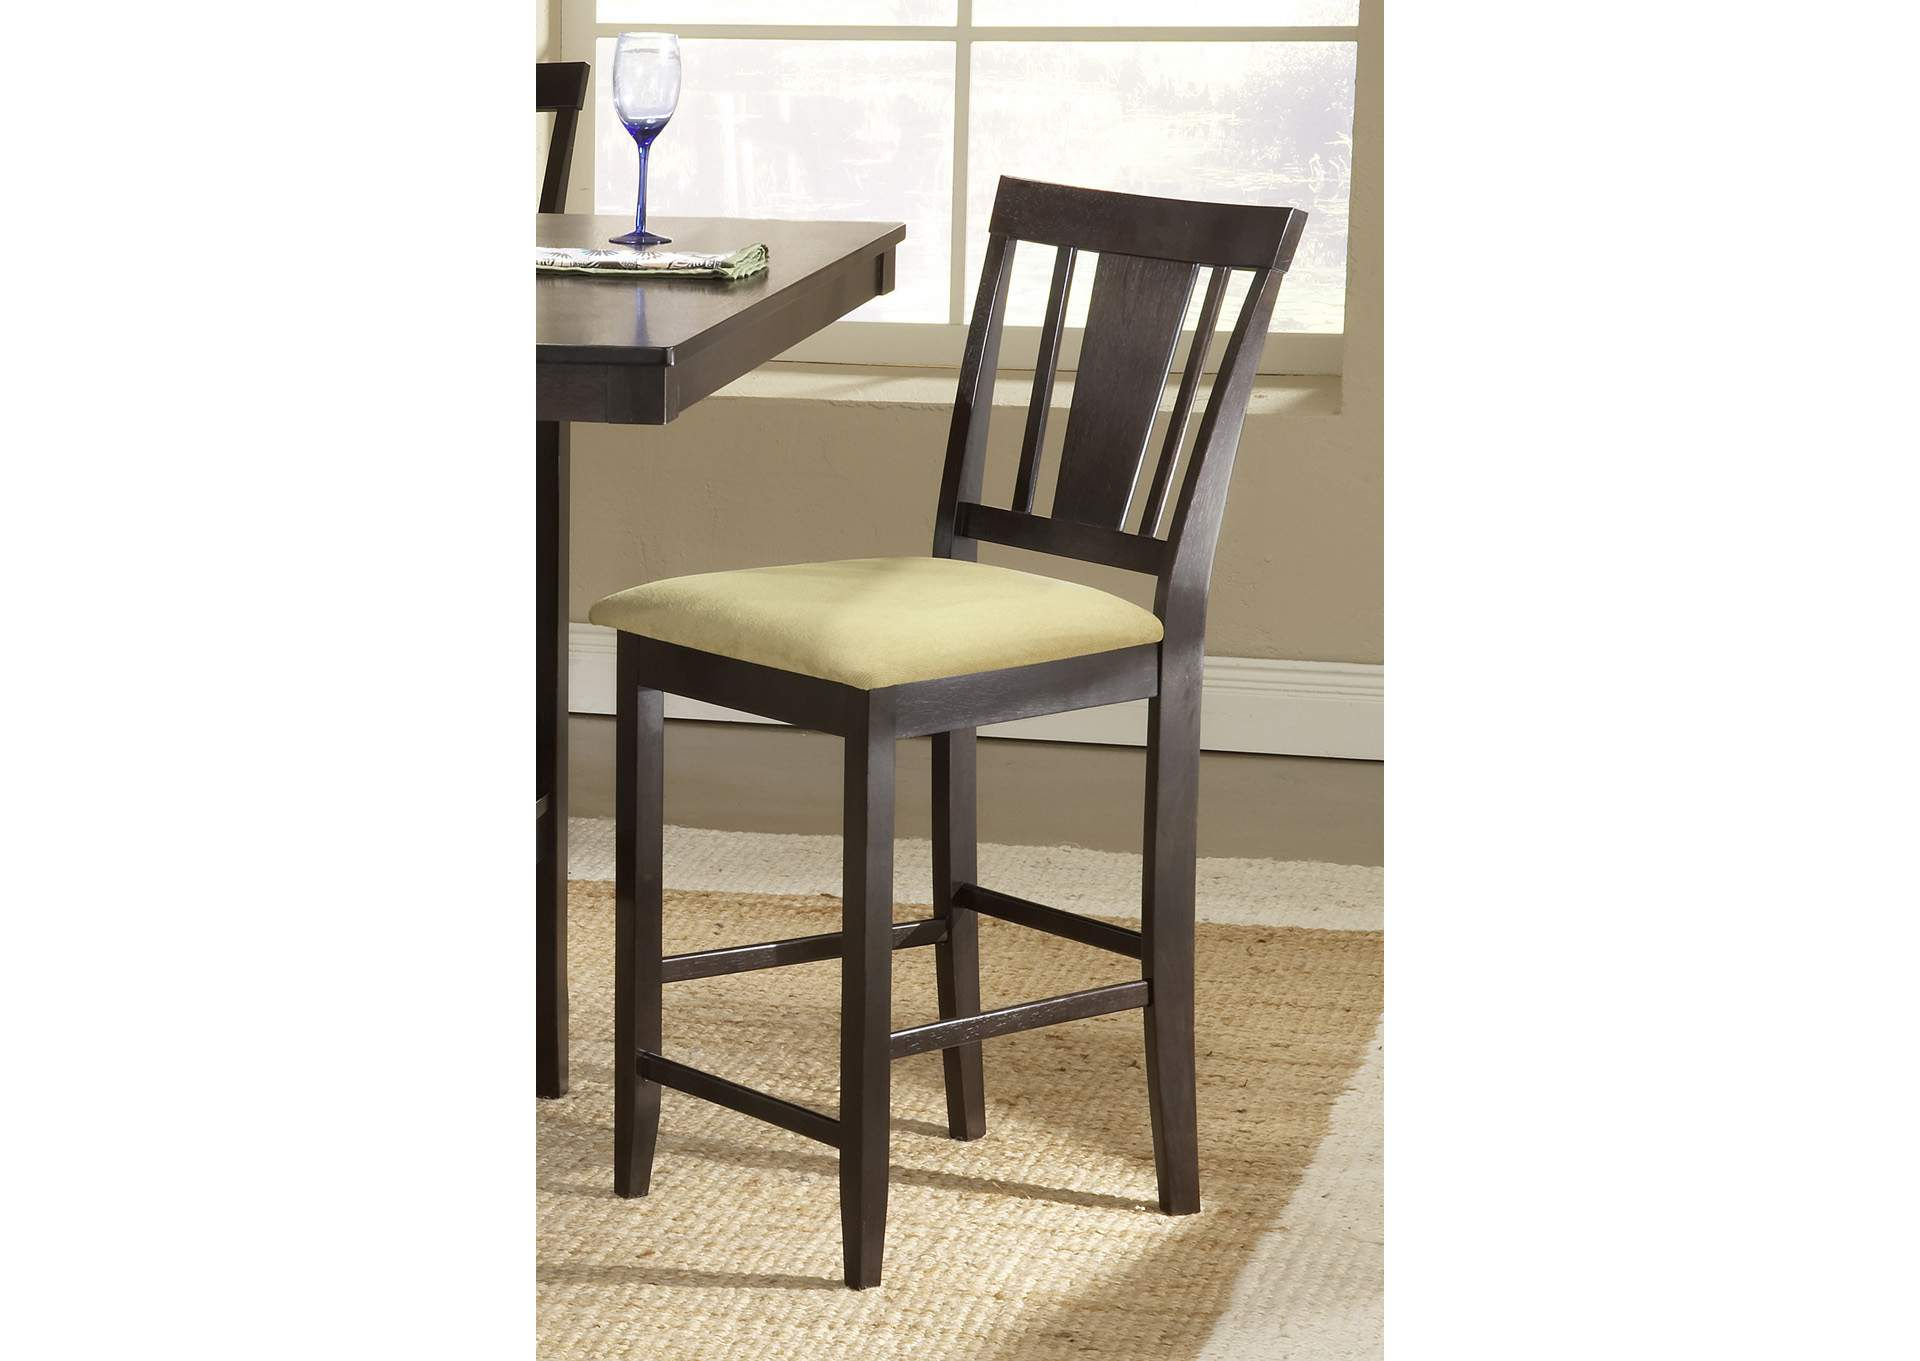 Arcadia Beige Non-Swivel Counter Stool,Hillsdale